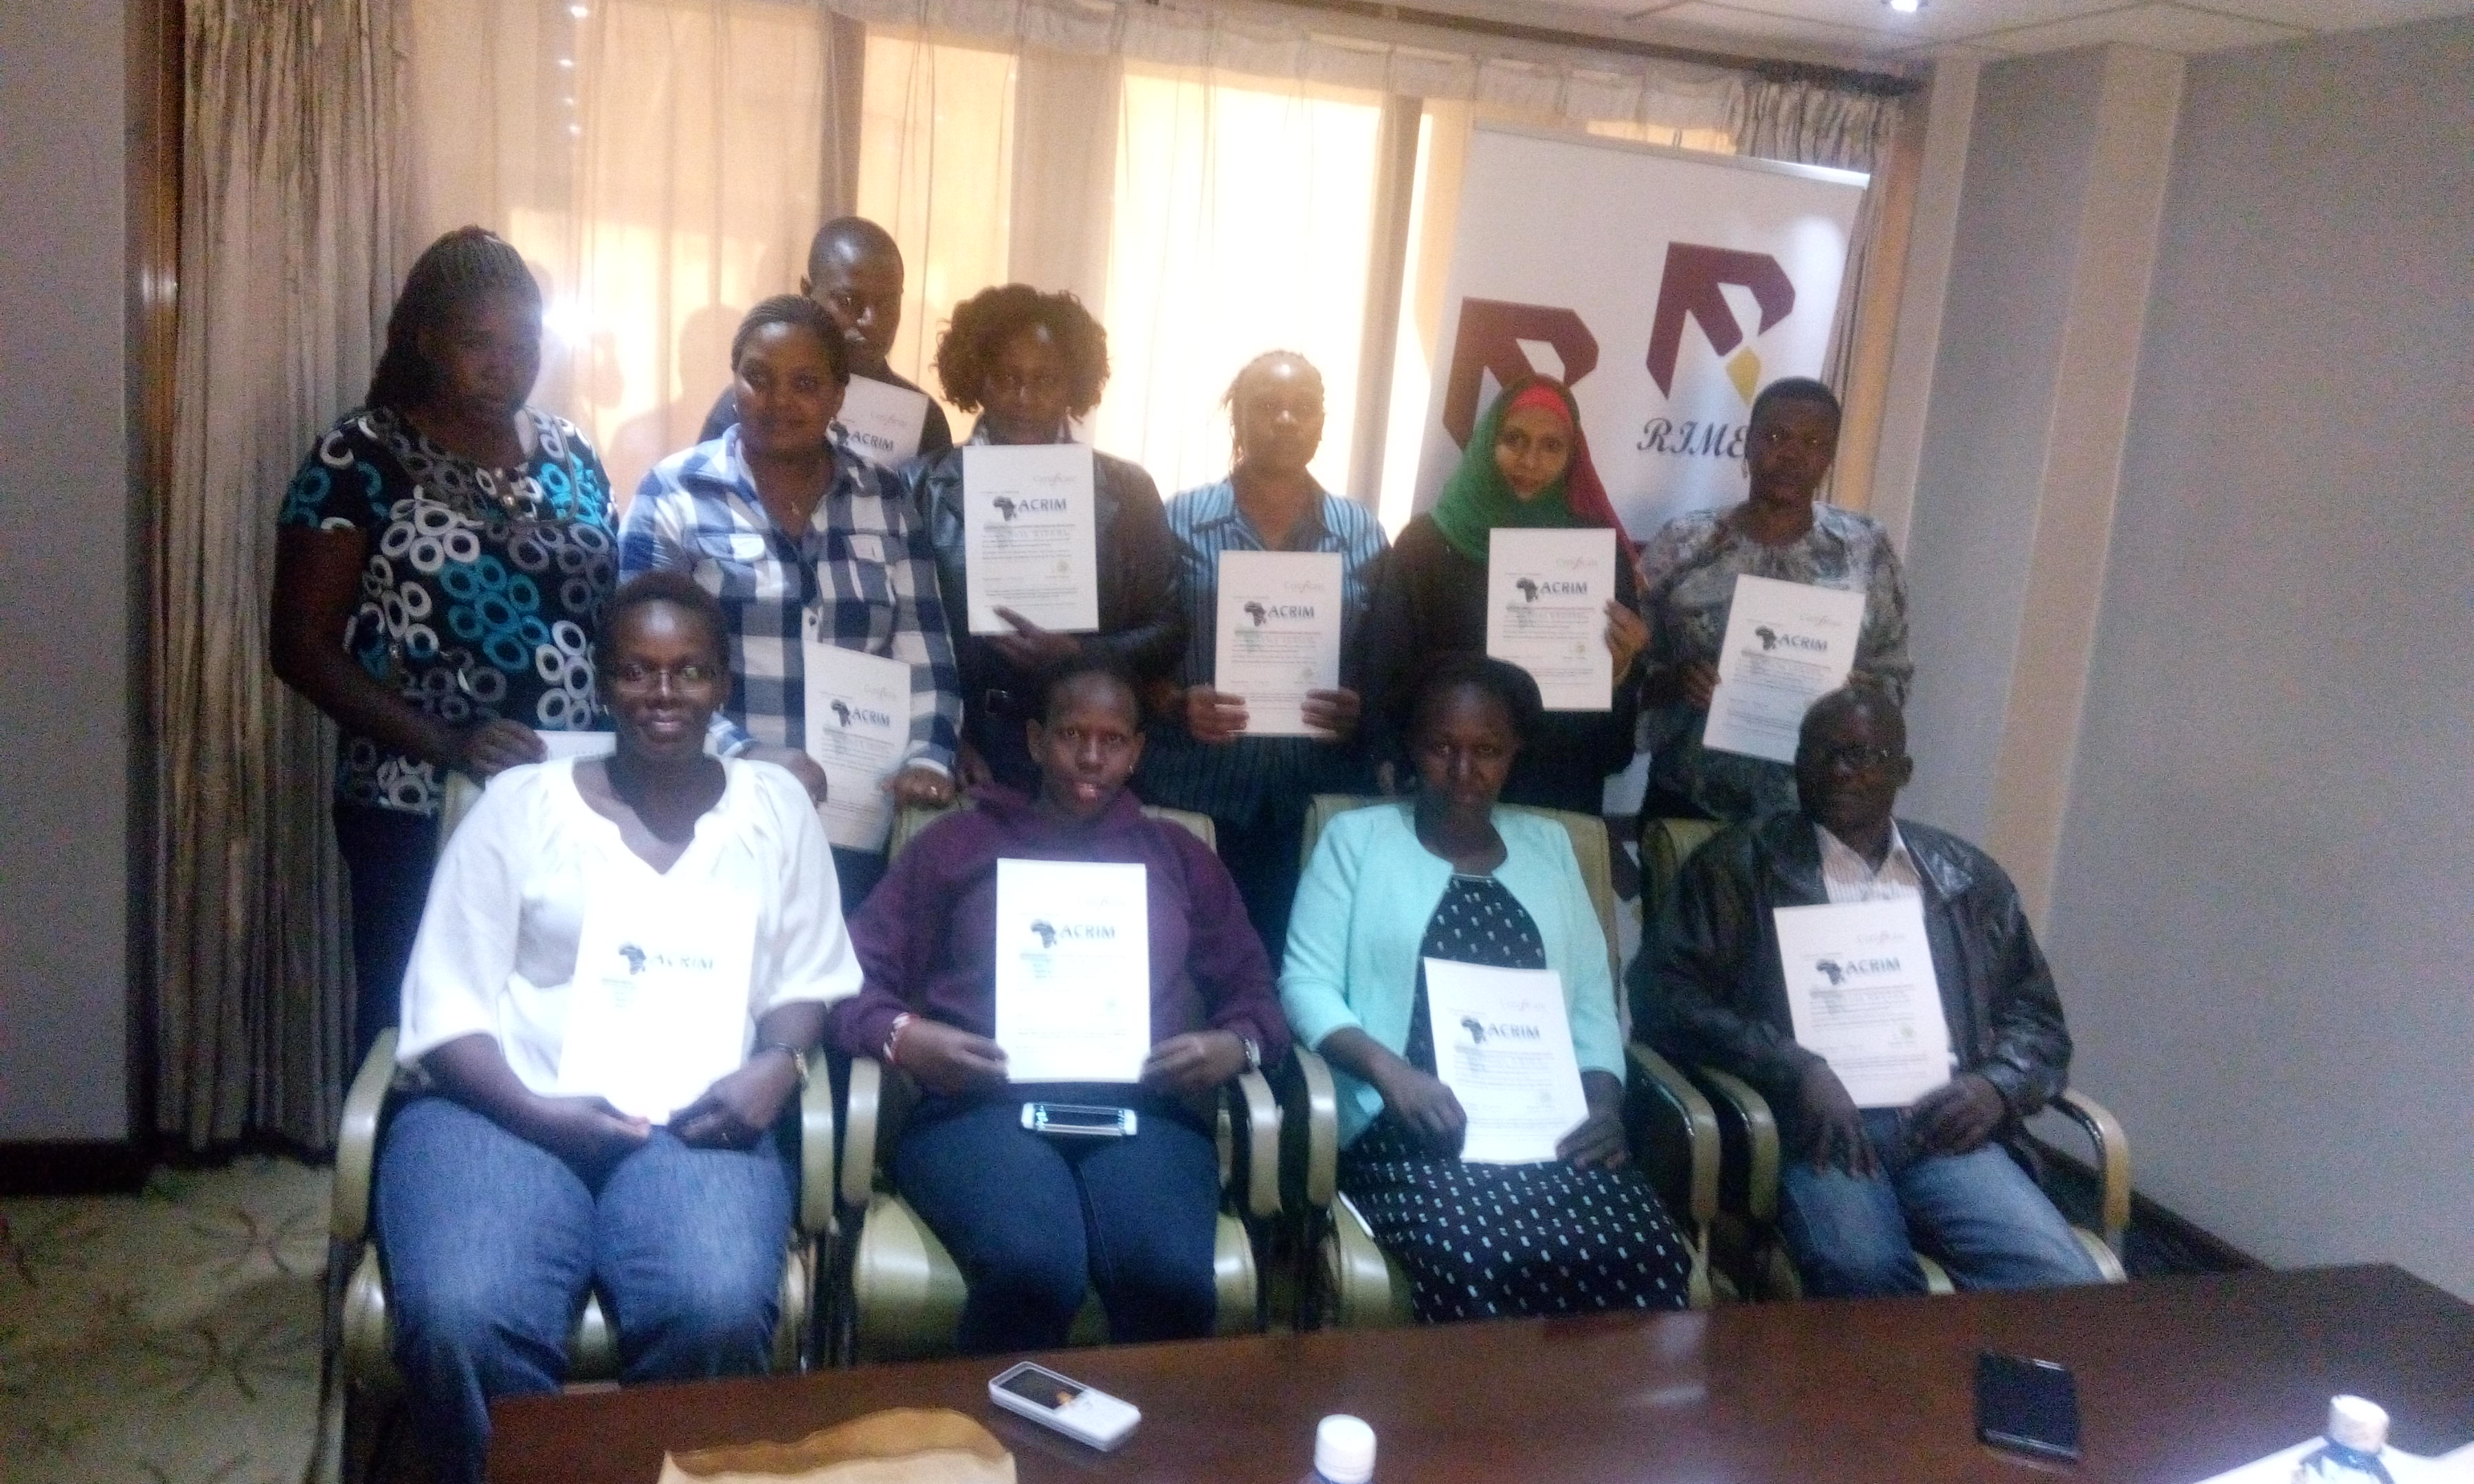 Administrative Officers from Tourism Fund upon completion of the 4 days Certified RIM-Basic Level course that was held at the Clarion Hotel, Nairobi, Kenya from 9th to 13th May 2016